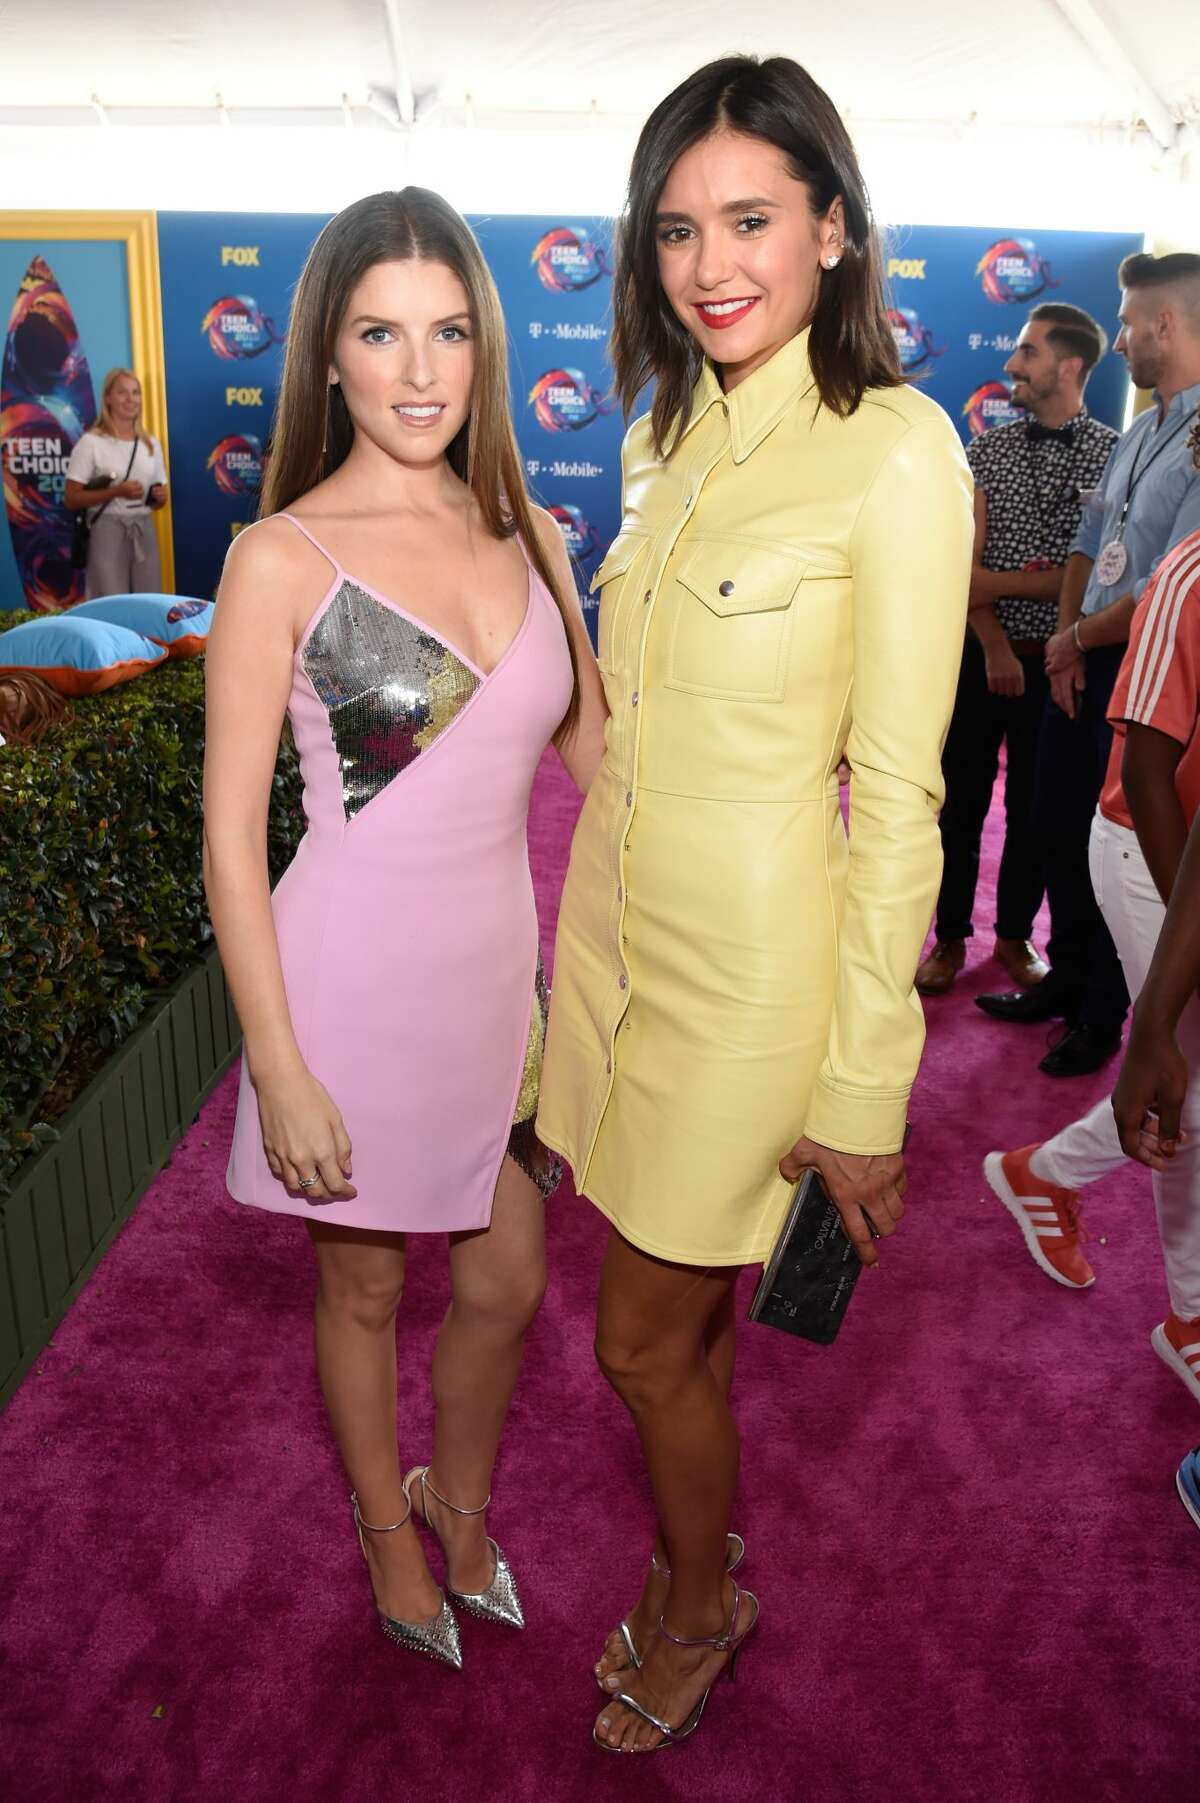 Anna Kendrick and Nina Dobrev attend FOX's Teen Choice Awards at The Forum on August 12, 2018 in Inglewood, California. (Photo by Kevin Mazur/Getty Images)